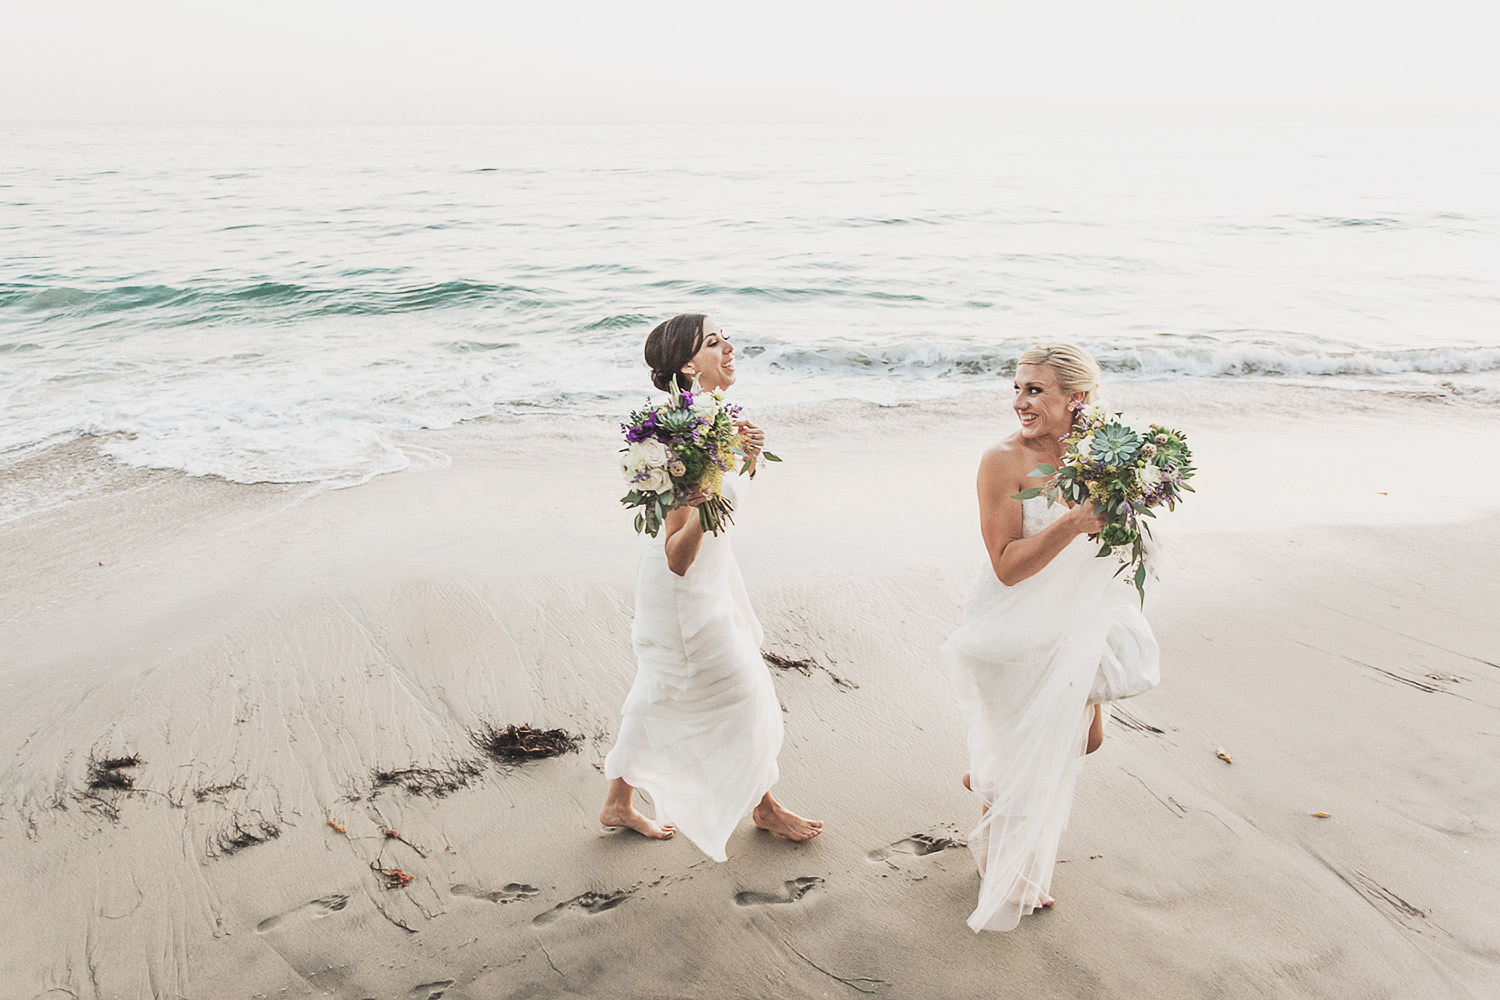 kelly-stephanie-wedding-photography-lesbian-bisexual-lgbt-lgbtq-beach-rustic.jpg